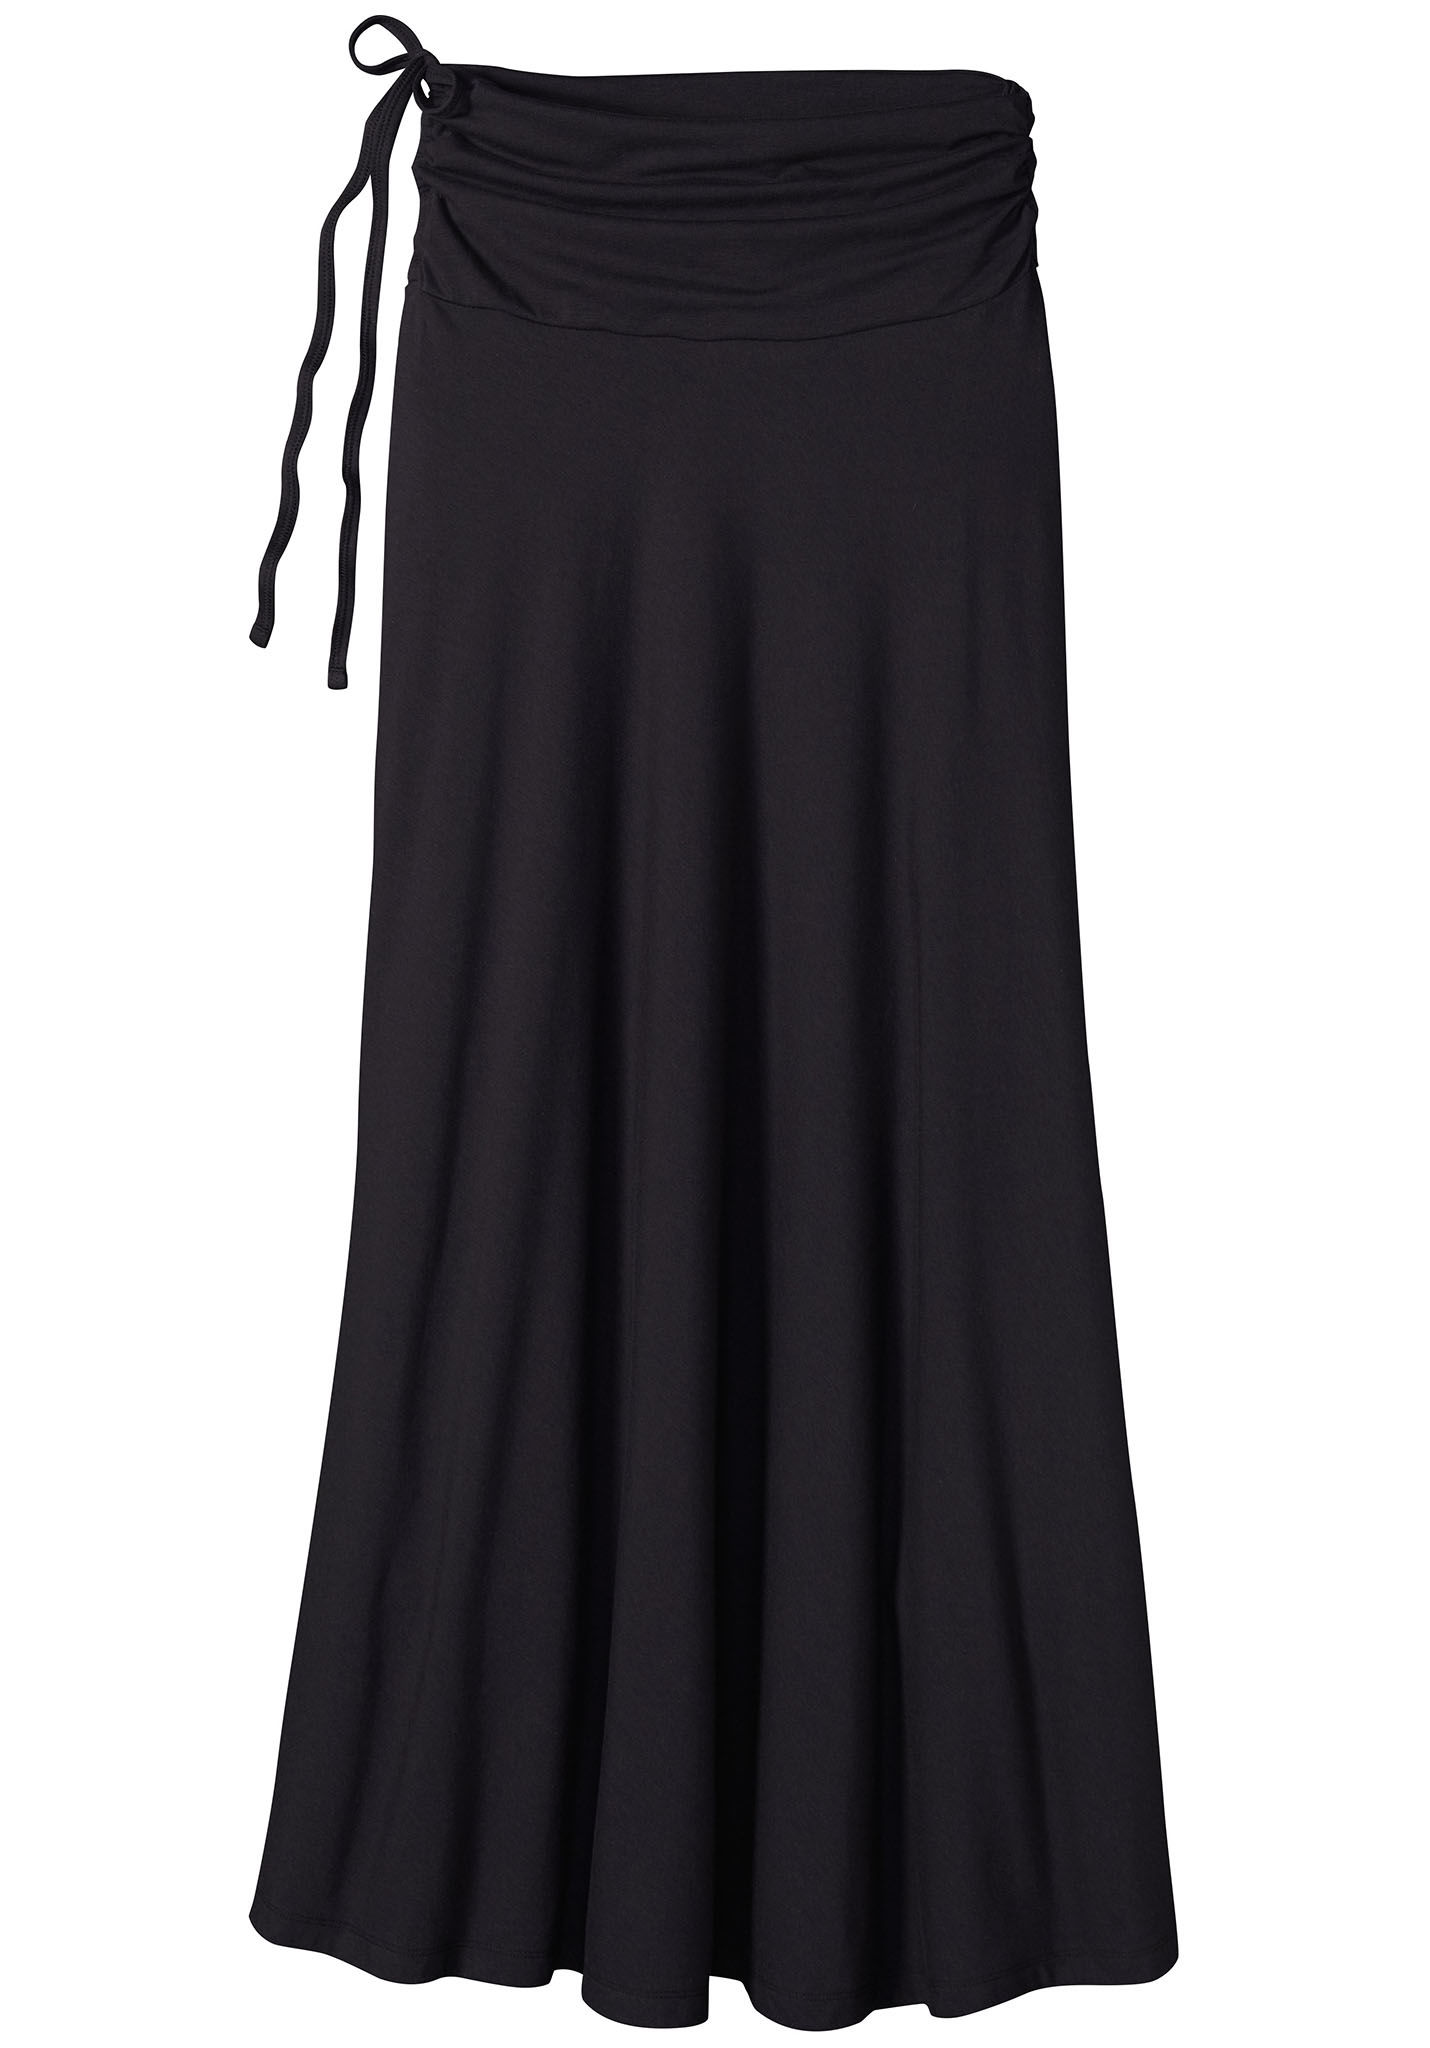 c880842c7f PATAGONIA Kamala Maxi - Skirt for Women - Black - Planet Sports